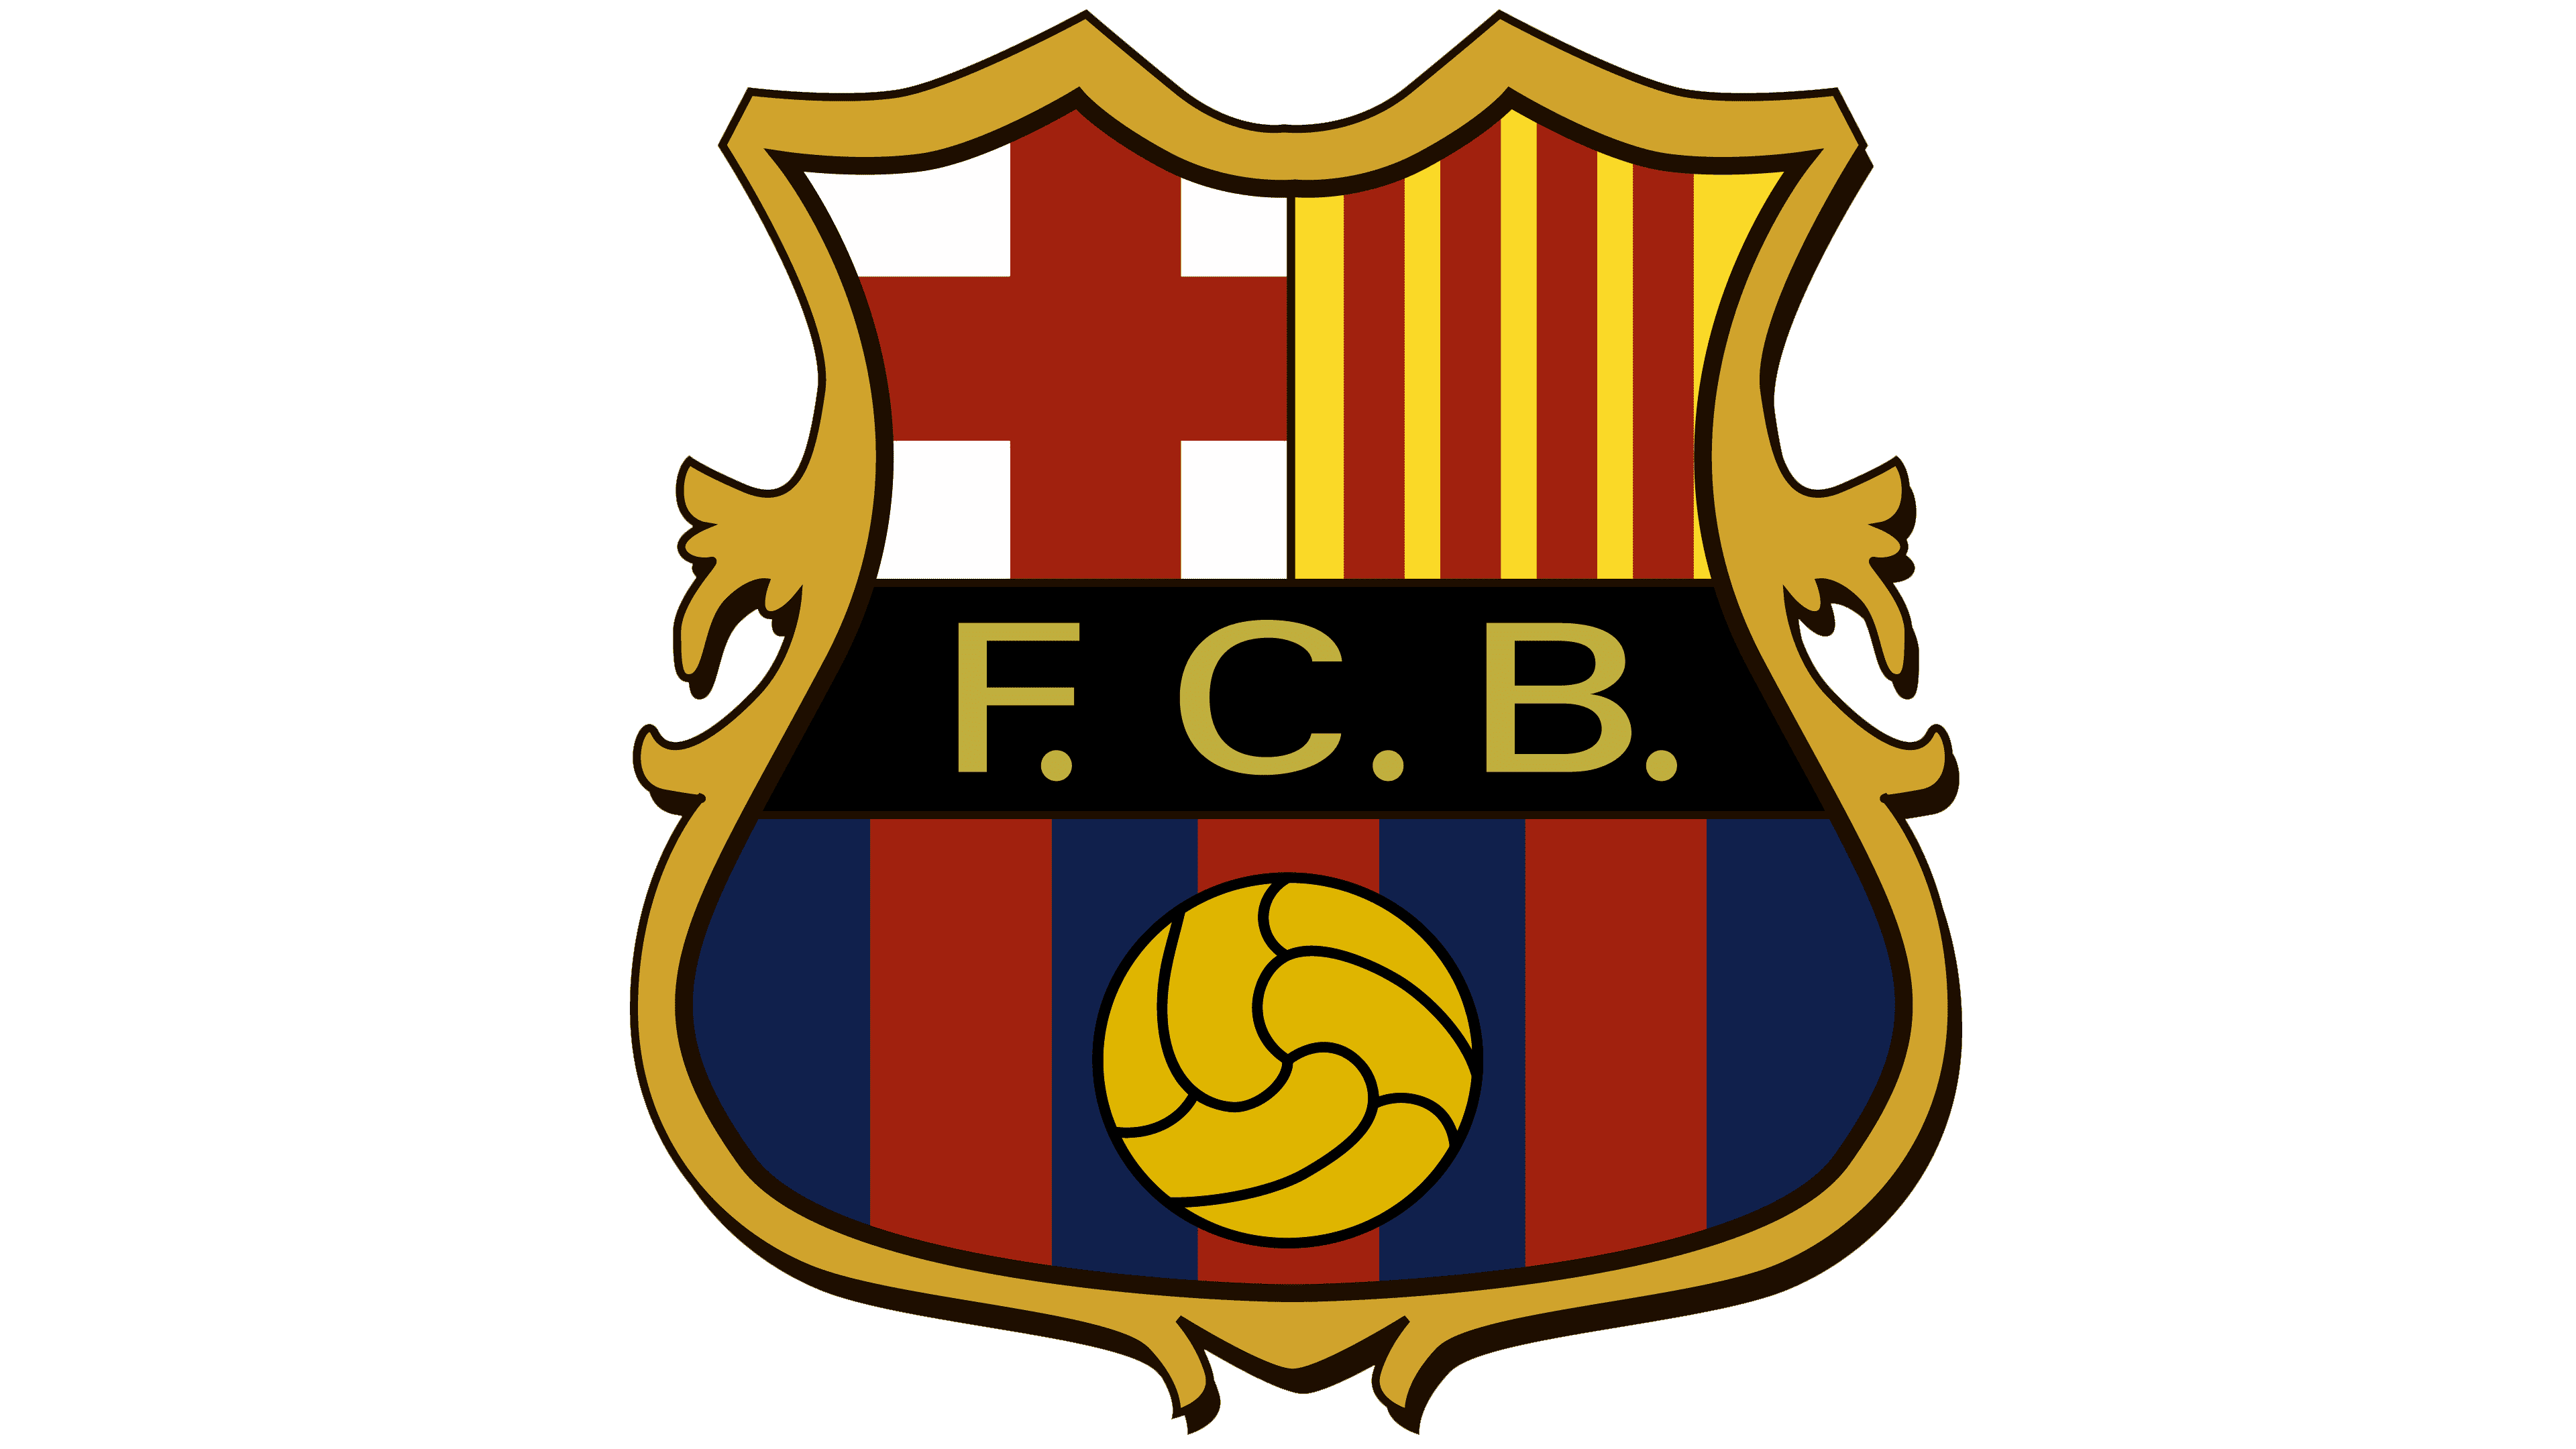 barcelona logo the most famous brands and company logos in the world barcelona logo the most famous brands